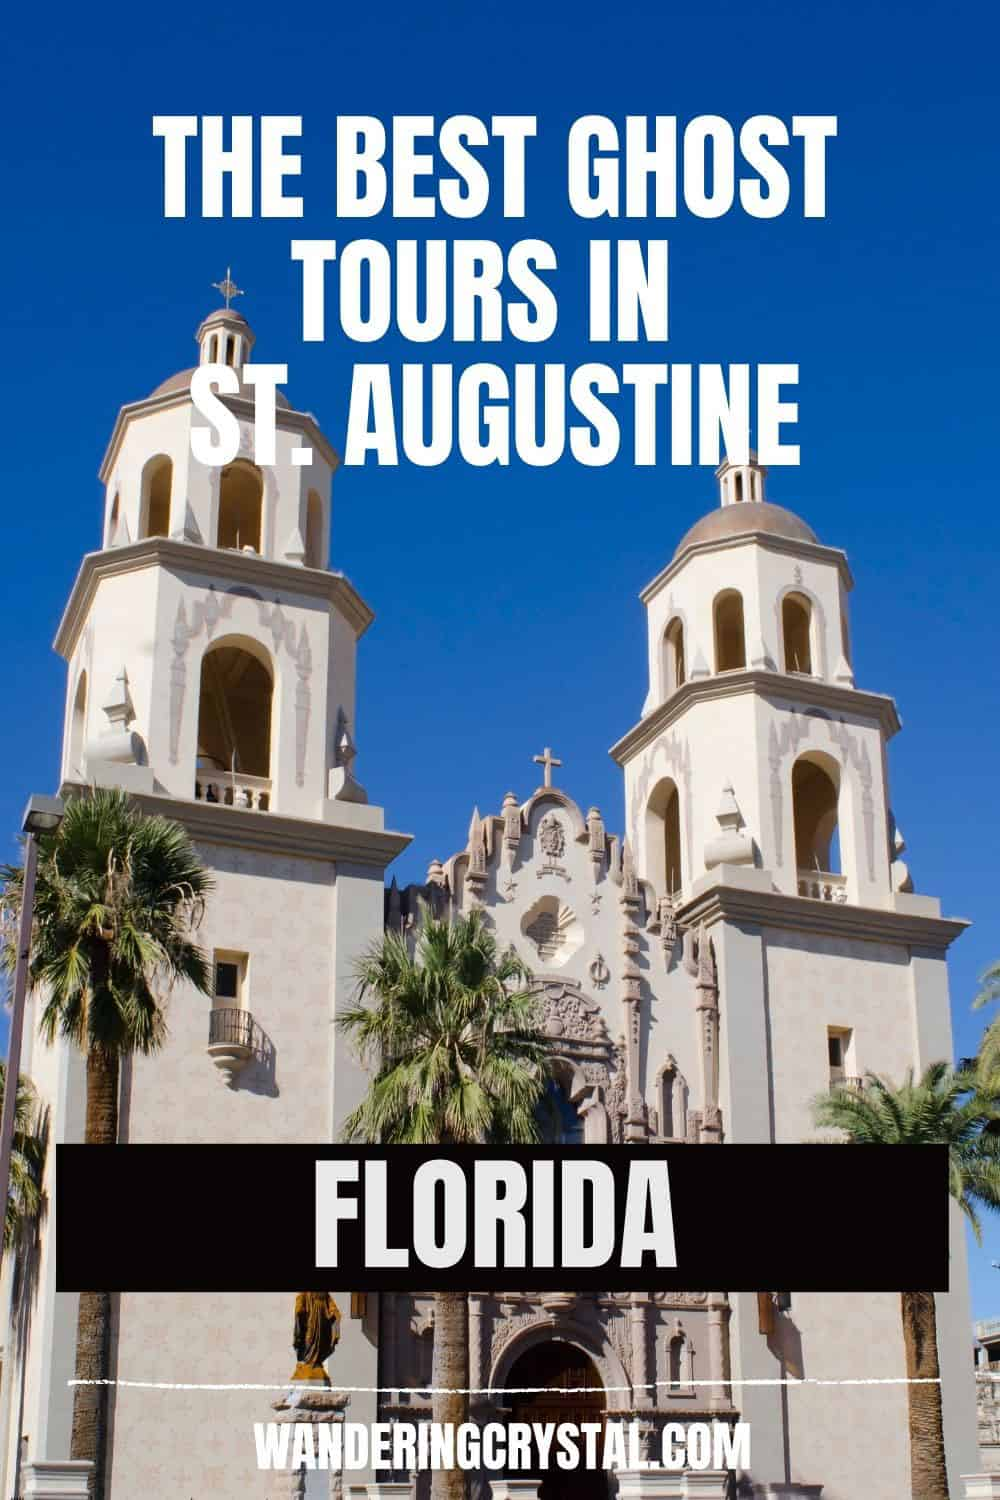 The 10 Best Ghost Tours in St. Augustine Florida Pin